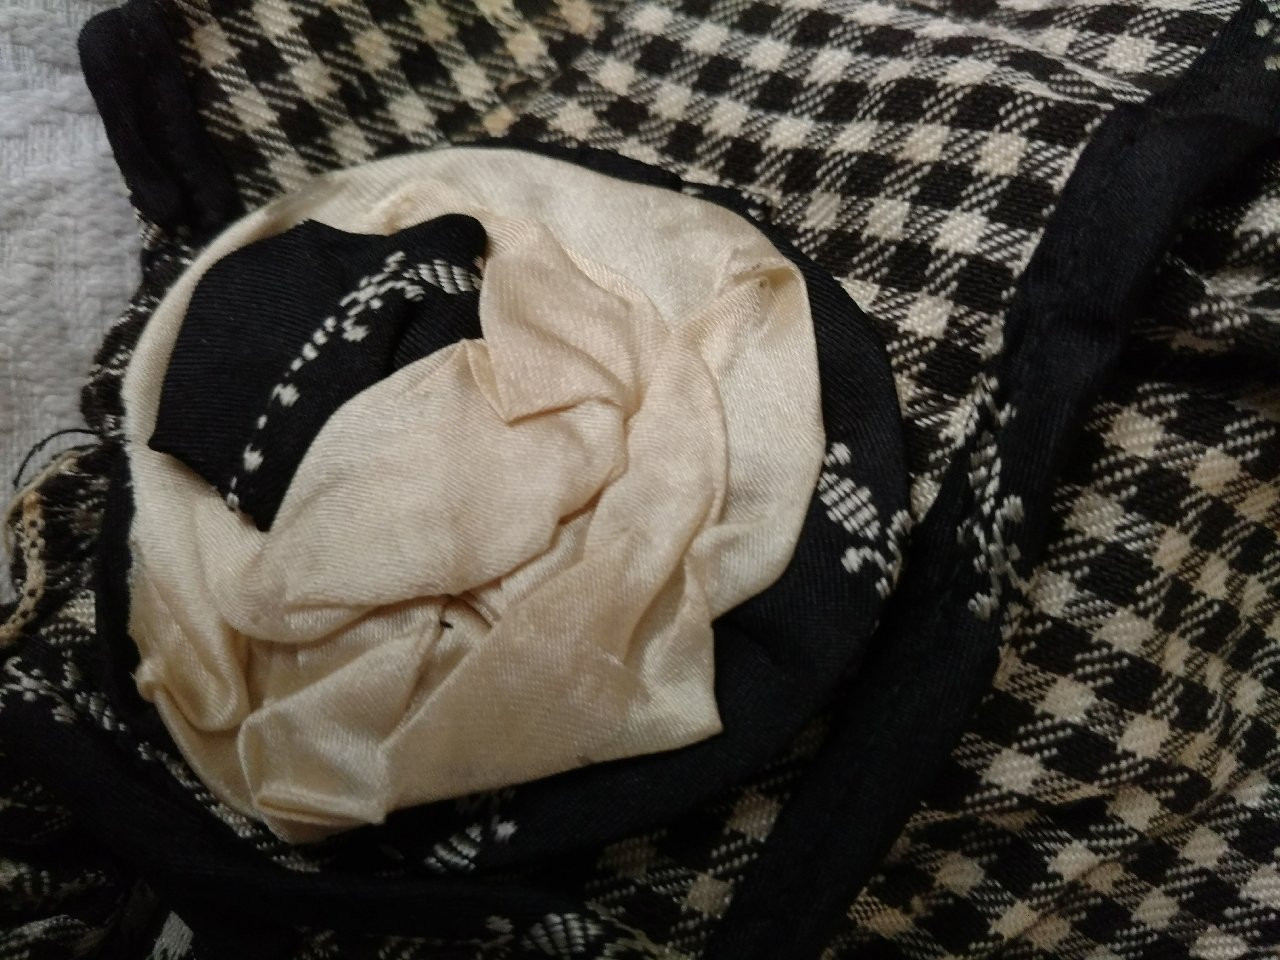 1920s Girl Bonnet Hat Home Sewn Black White Check Ribbon Rosettes